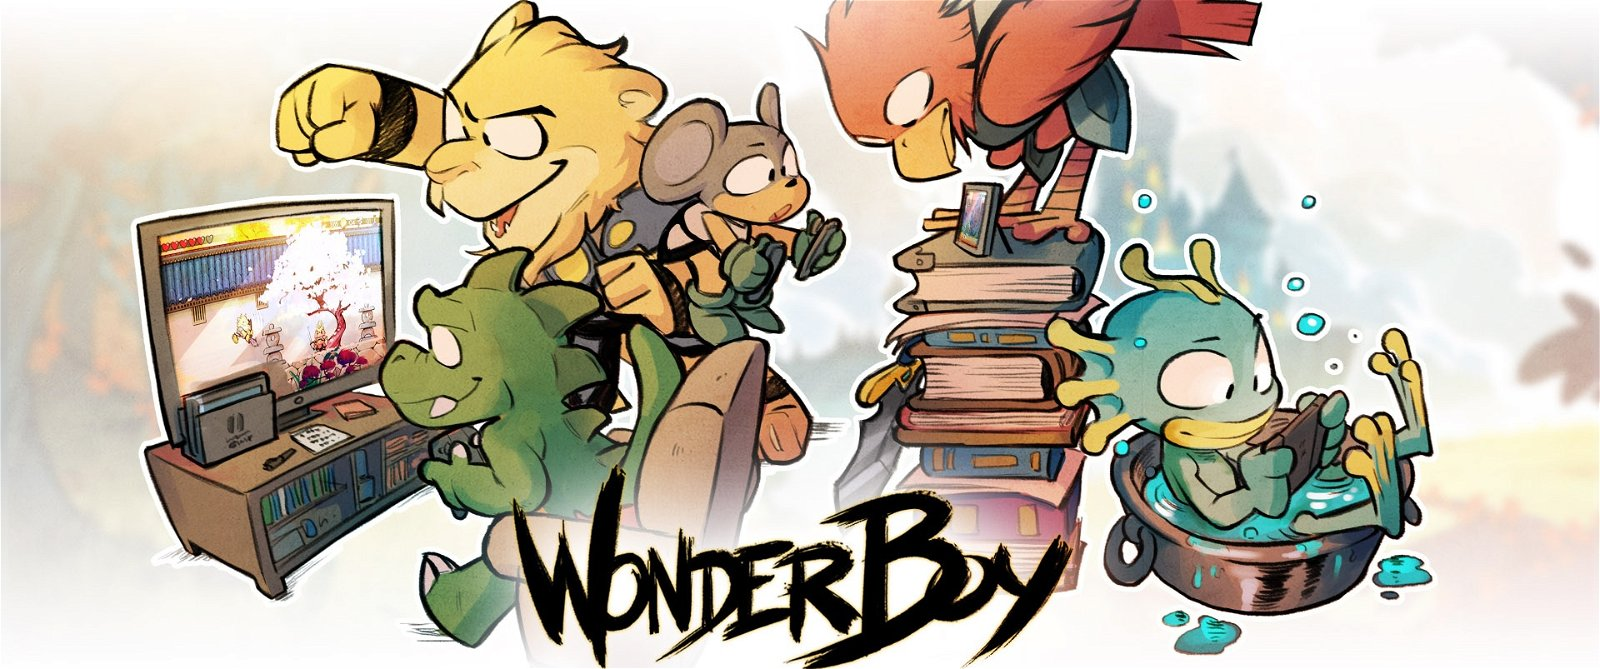 Wonder Boy: The Dragon's Trap Review - Something Old, Something New 5